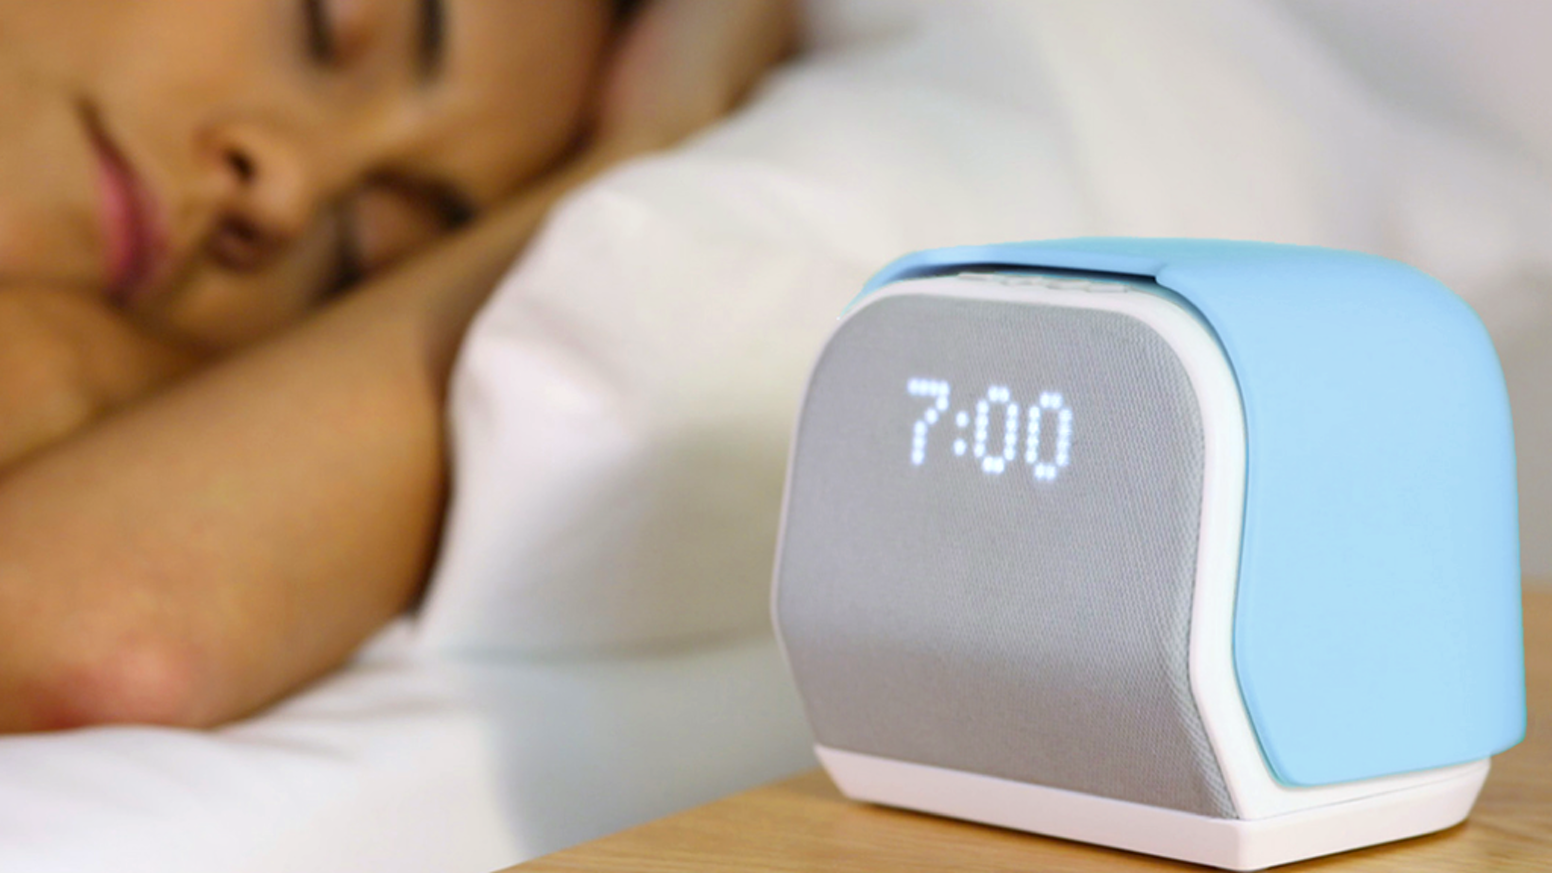 More than an alarm clock, Kello is an advanced sleep trainer that helps you fall asleep, snooze less, tune your body clock and more.